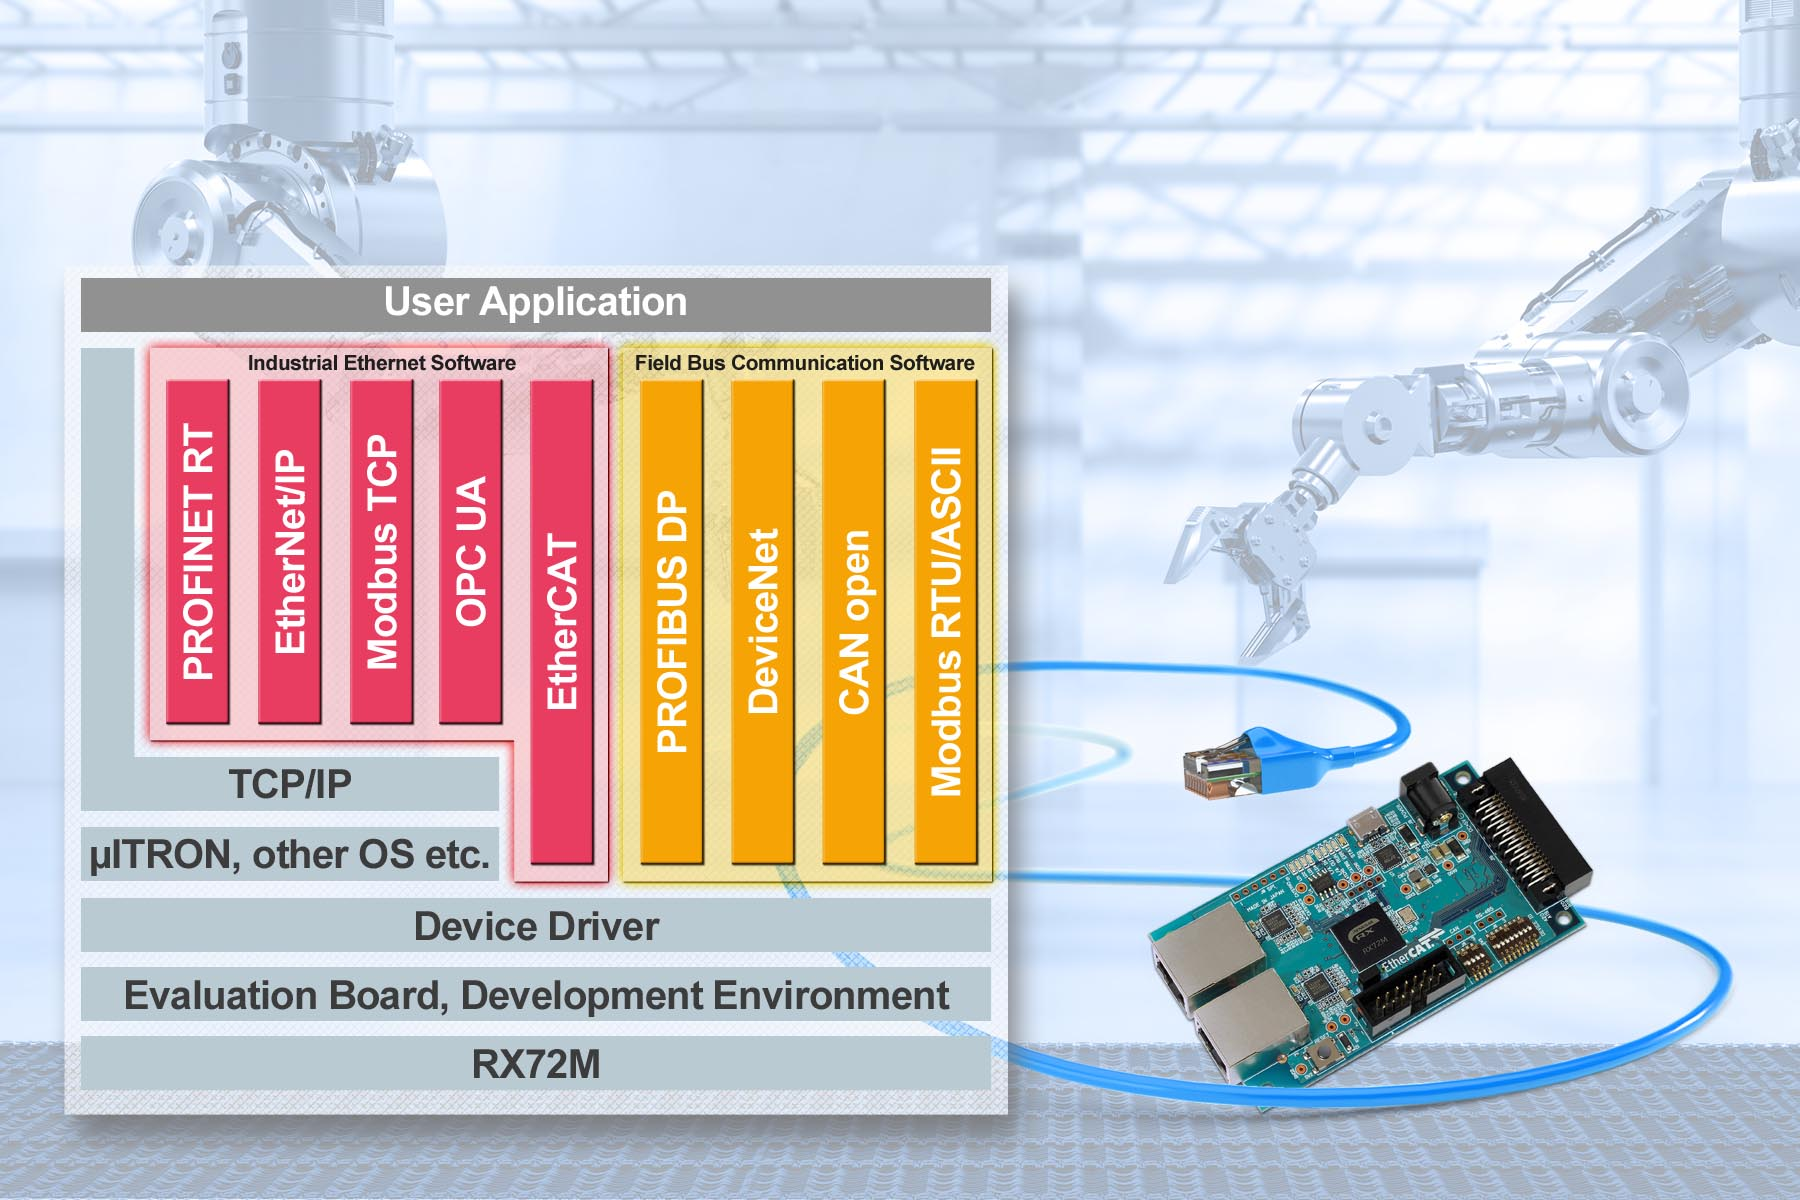 Renesas Solution Speeds Dev Time for Industrial Network Equipment